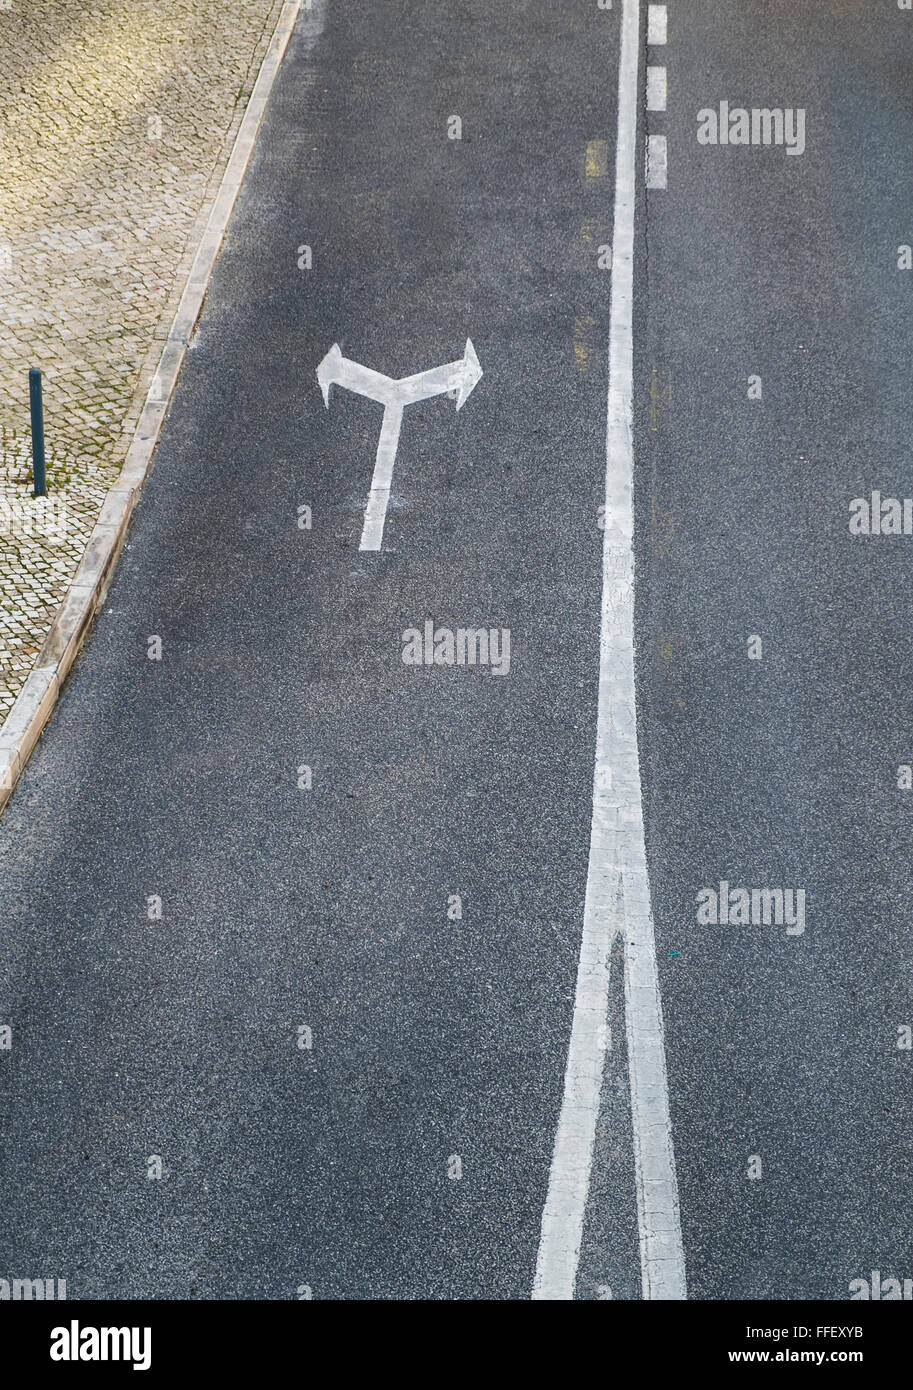 arrows, road surface markings - Stock Image